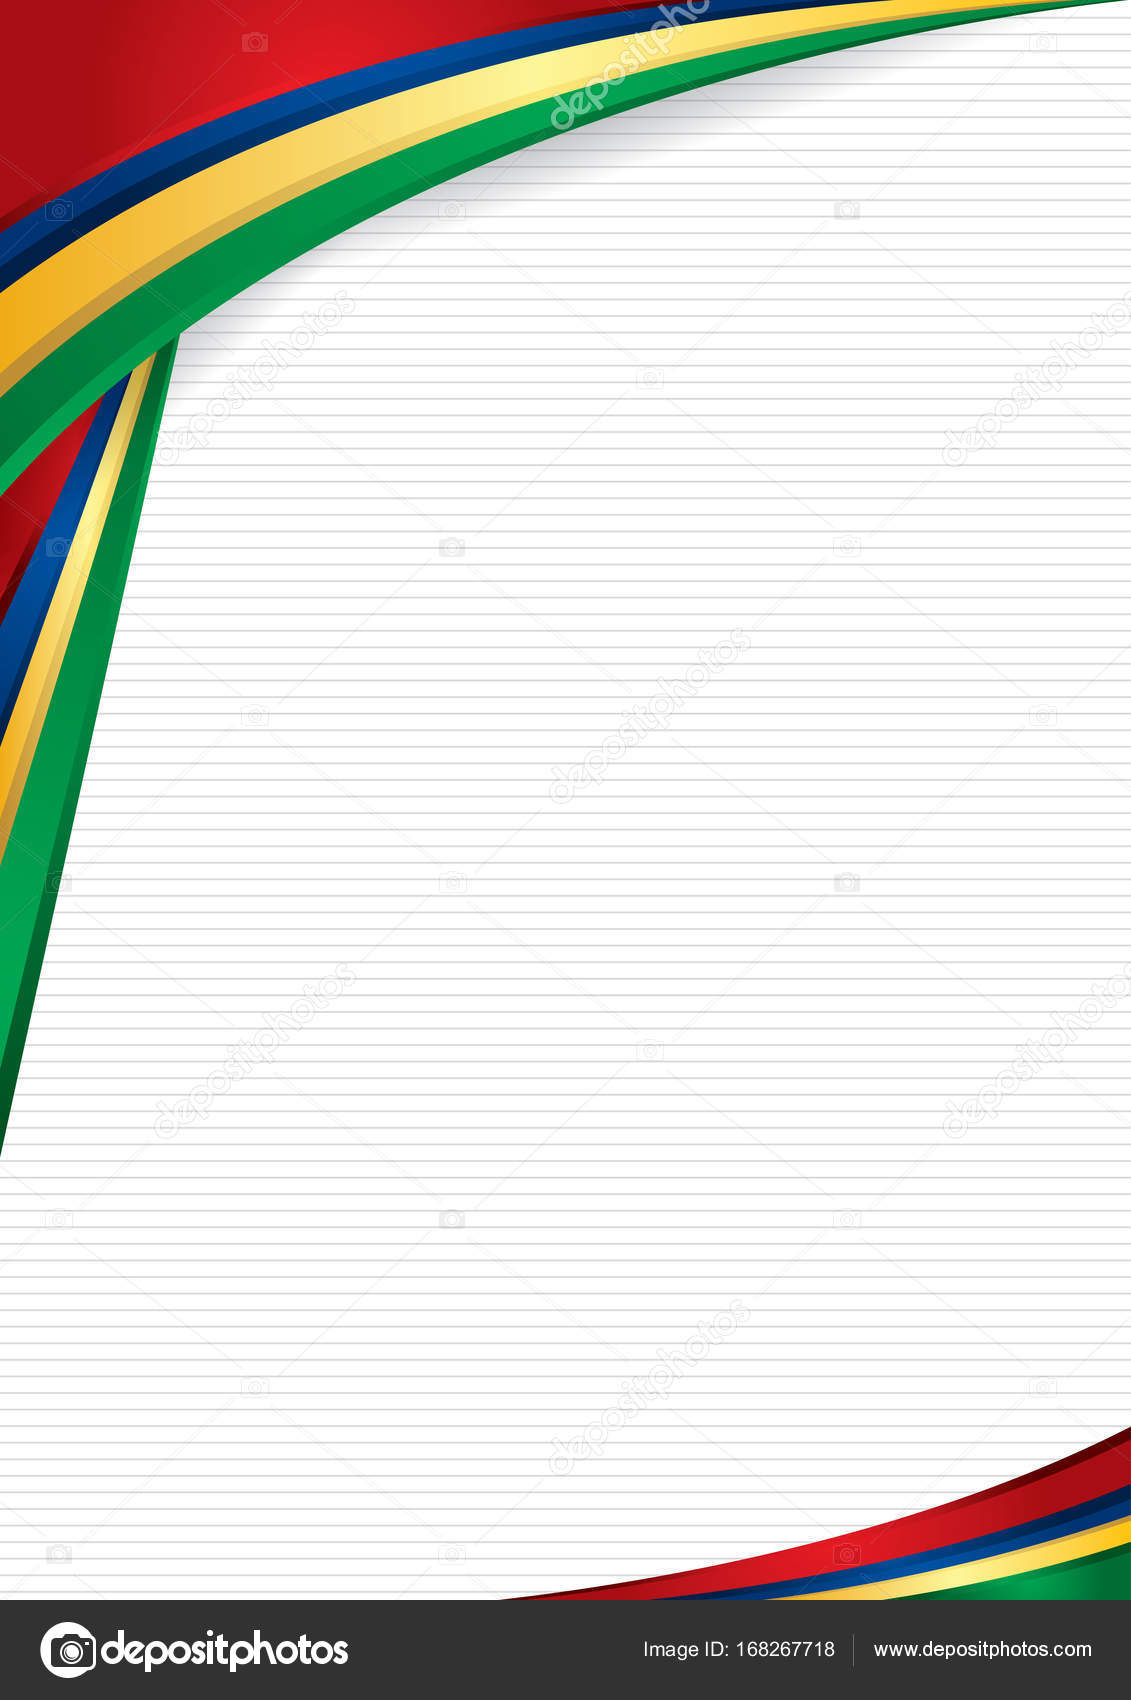 Abstract Background With Shapes With The Colors Of The Flag Of Mauritius To Use As Diploma Or Certificate Format A4 Vector Image Vector Image By Alejomiranda Vector Stock 168267718